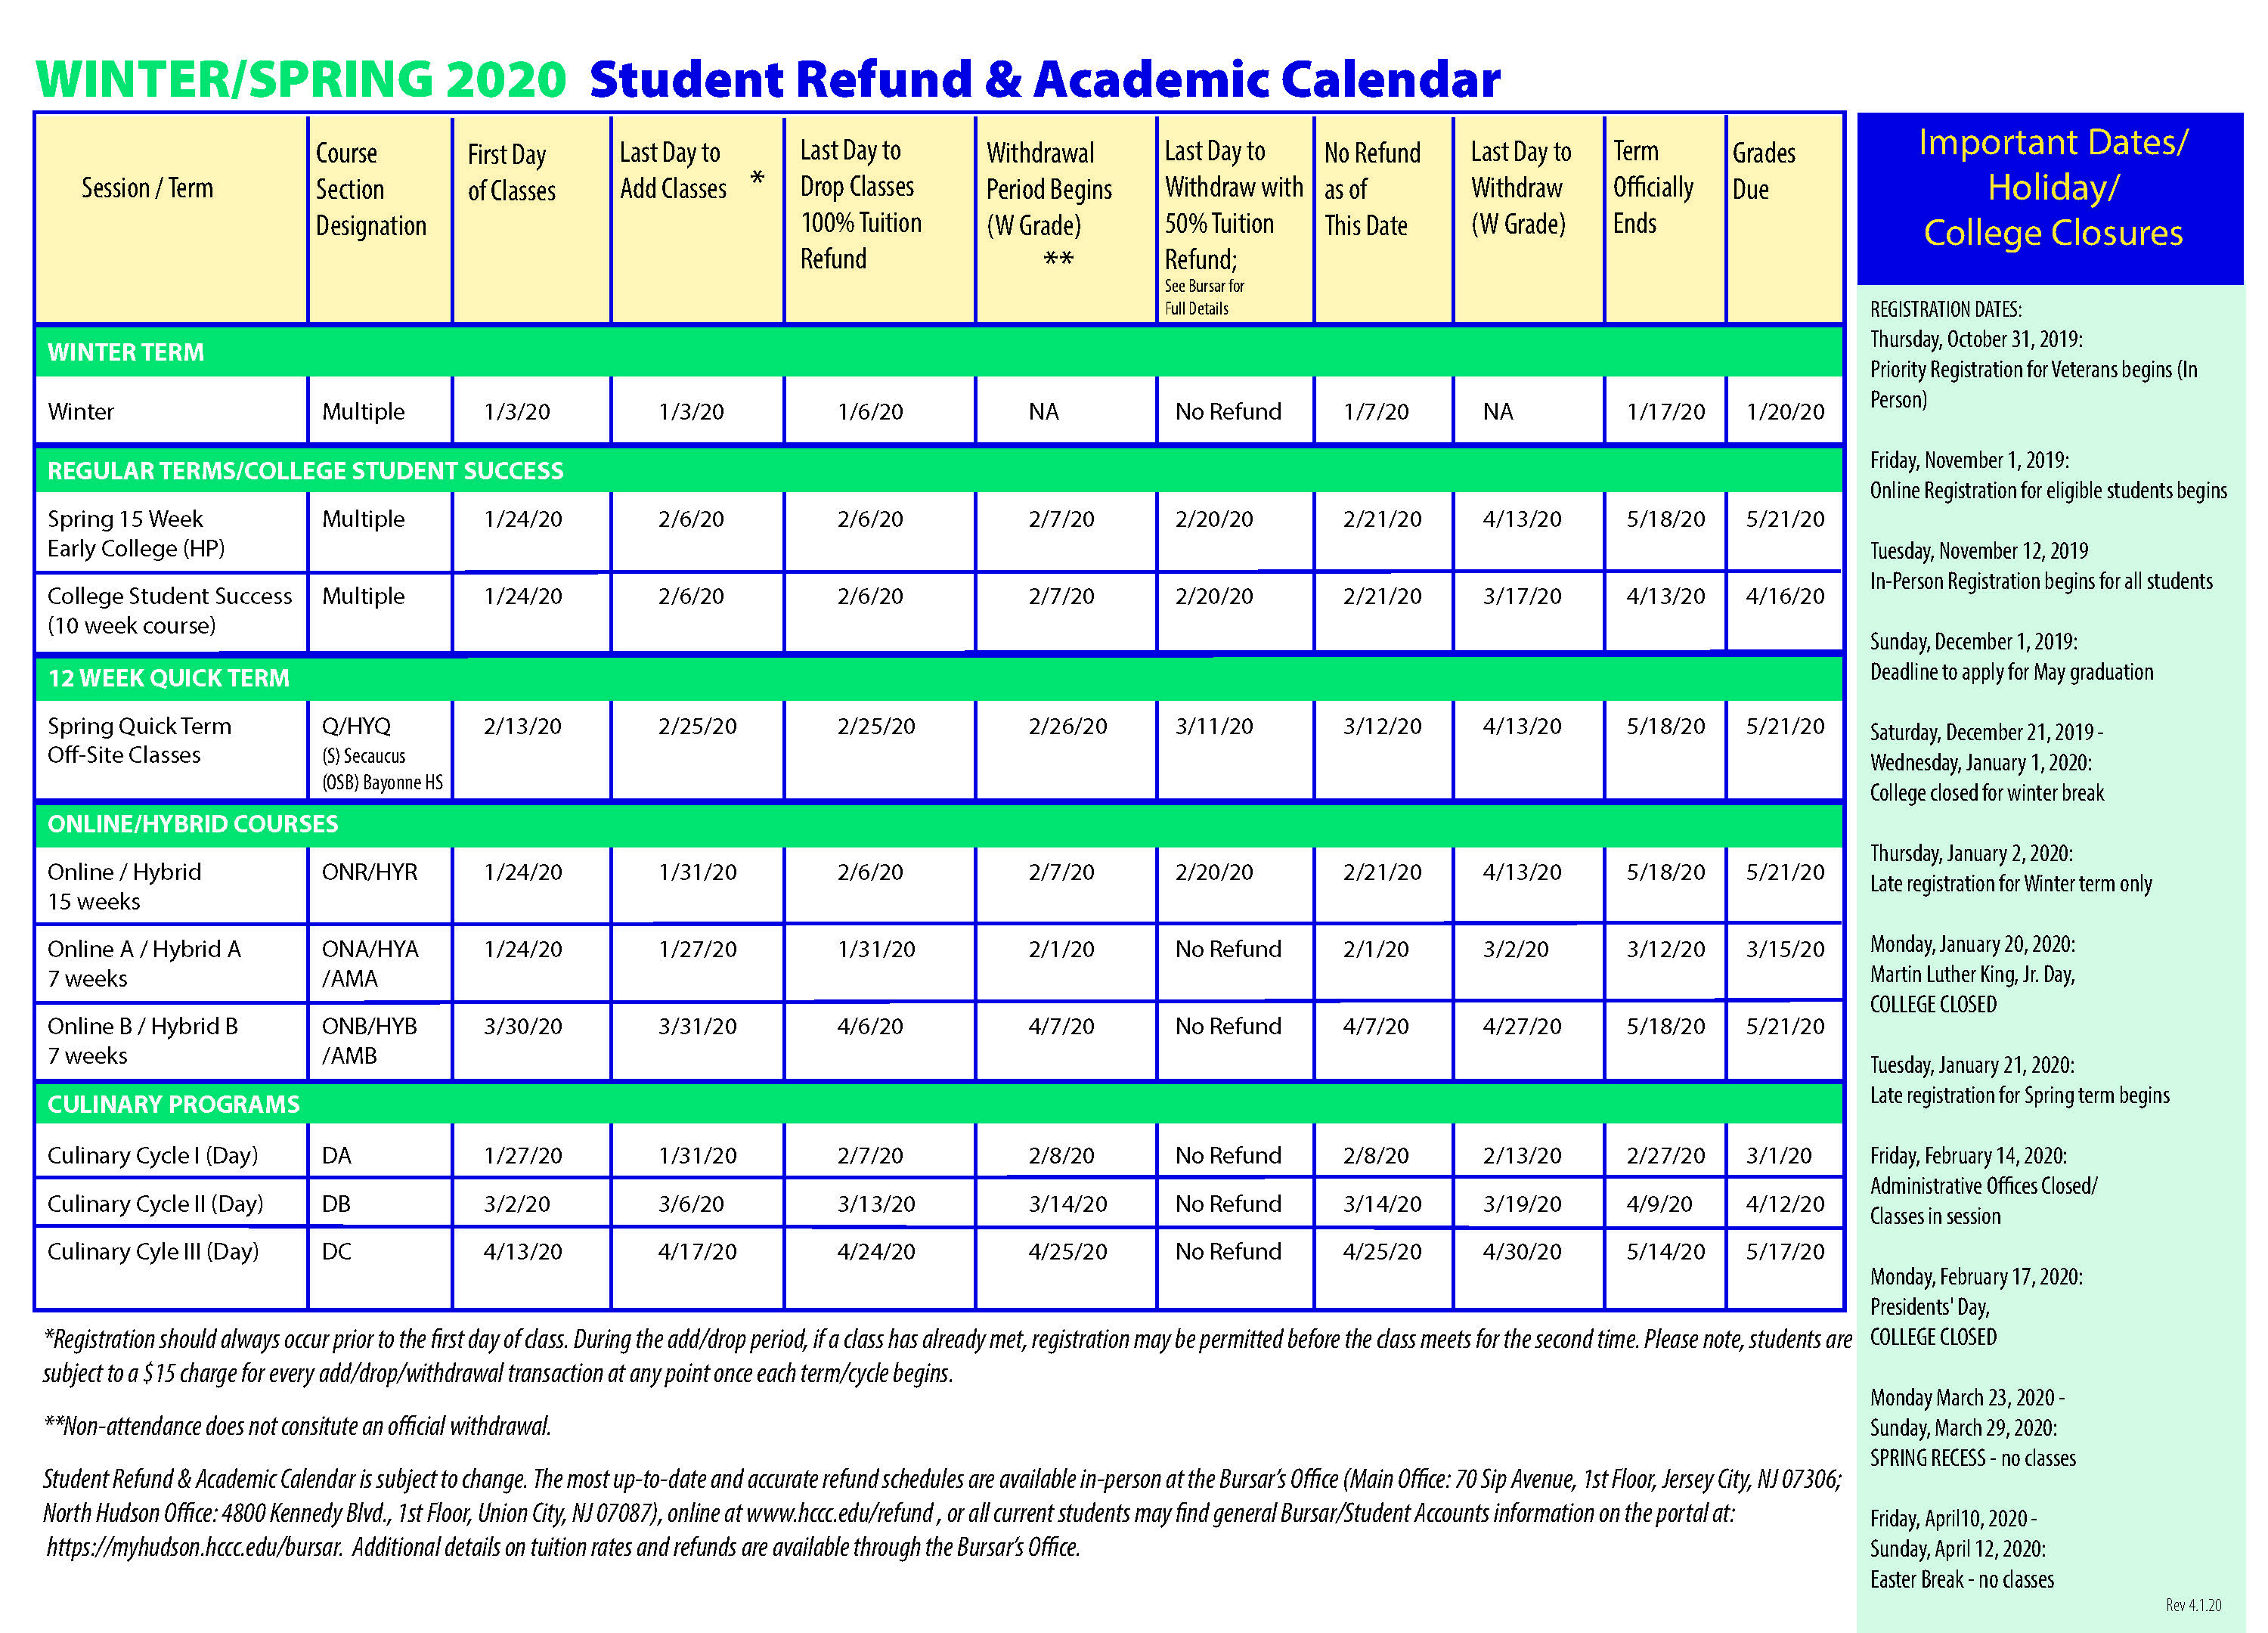 Hudson County Community College Pertaining To Nassau Community College Academic Calendar Spring 2020